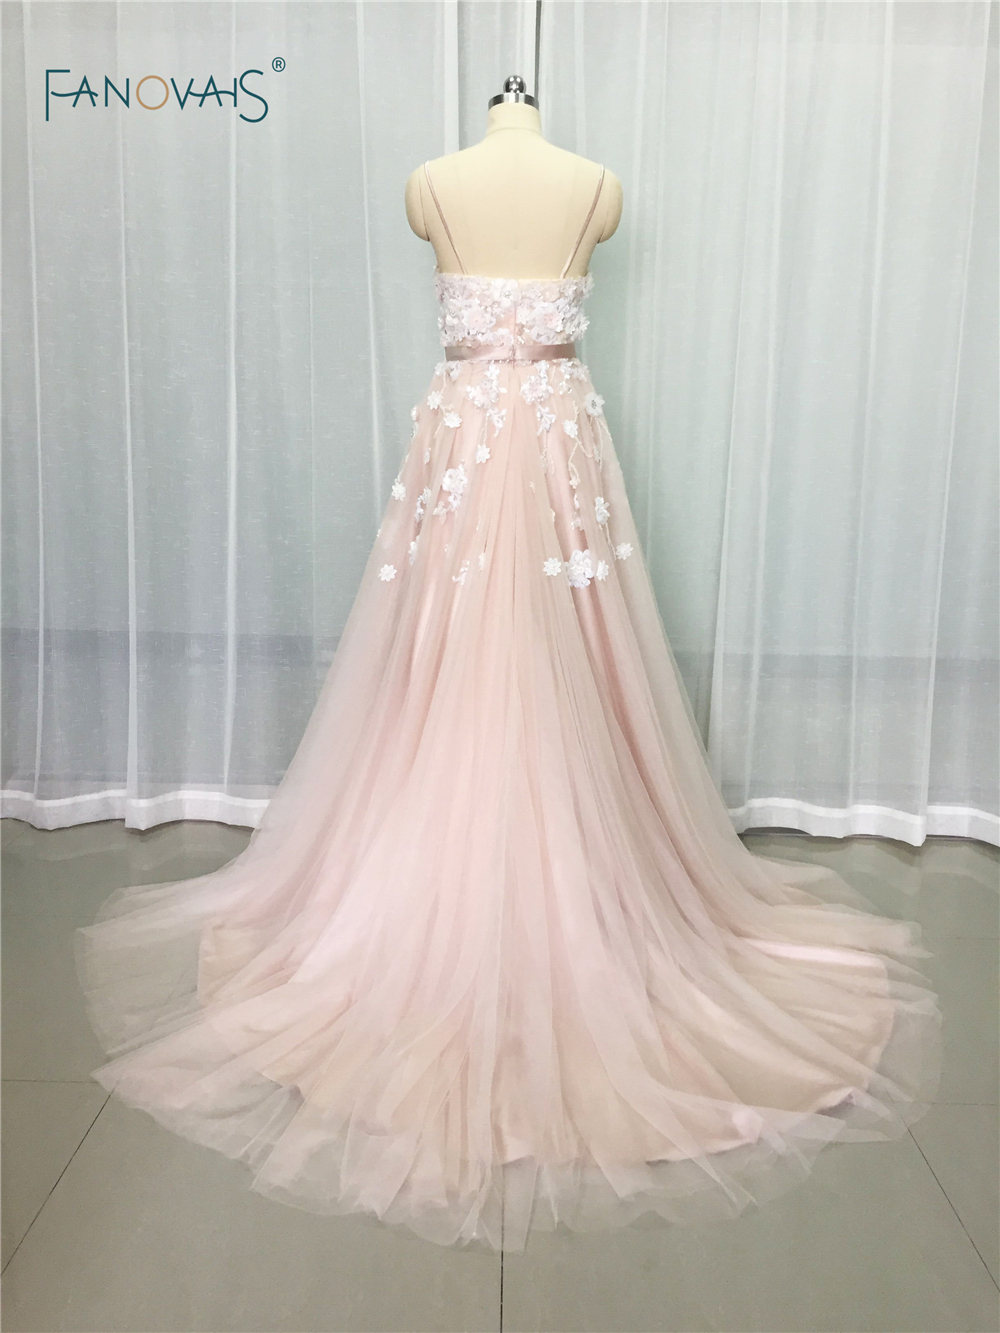 Image 2 - Sexy 2019 Blush Wedding Dresses with Crystal Spaghetti Straps Tulle Flower Wedding Gown Bridal Gown Vestido de Novia BT04blush wedding dresswedding dress with crystalswedding dress -